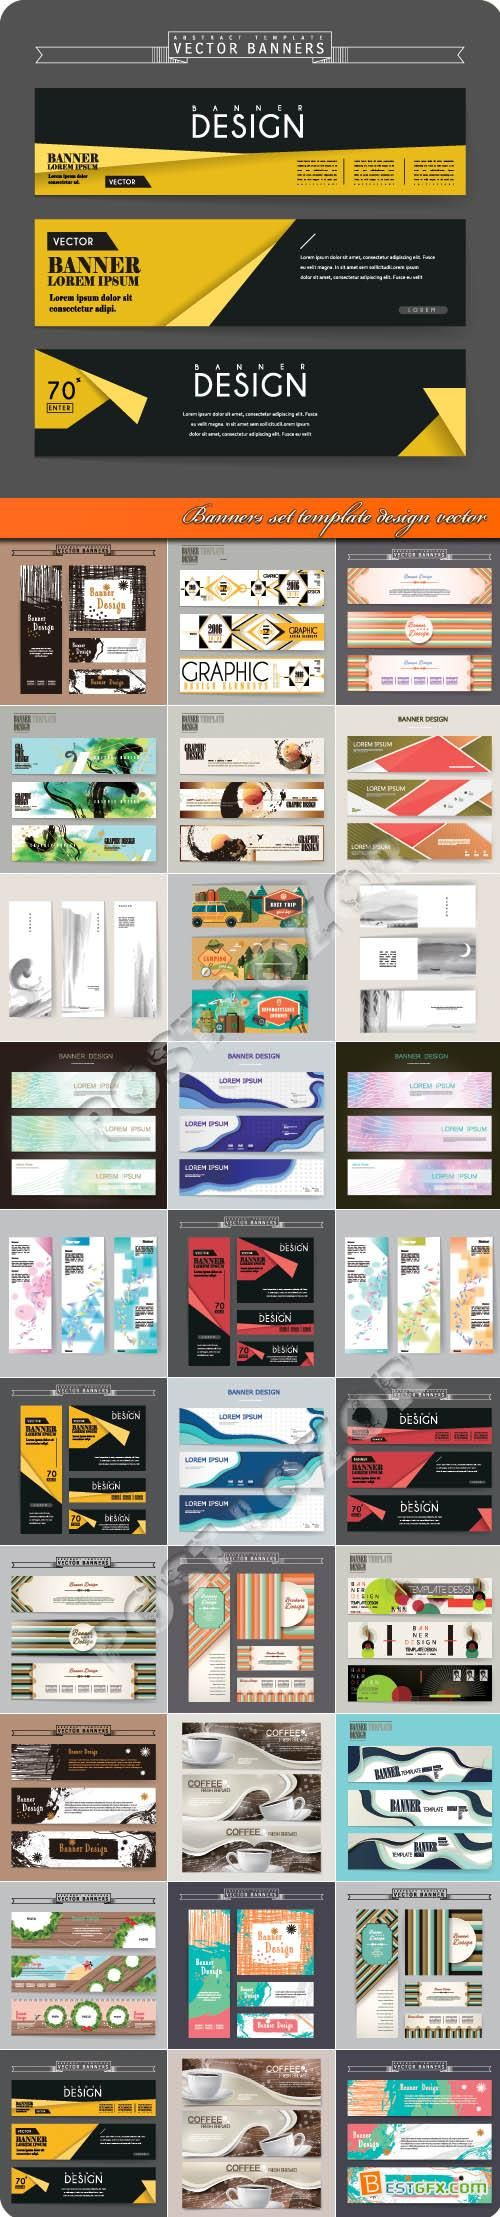 Banner Design Ideas banner ideas for products Banners Set Template Design Vector